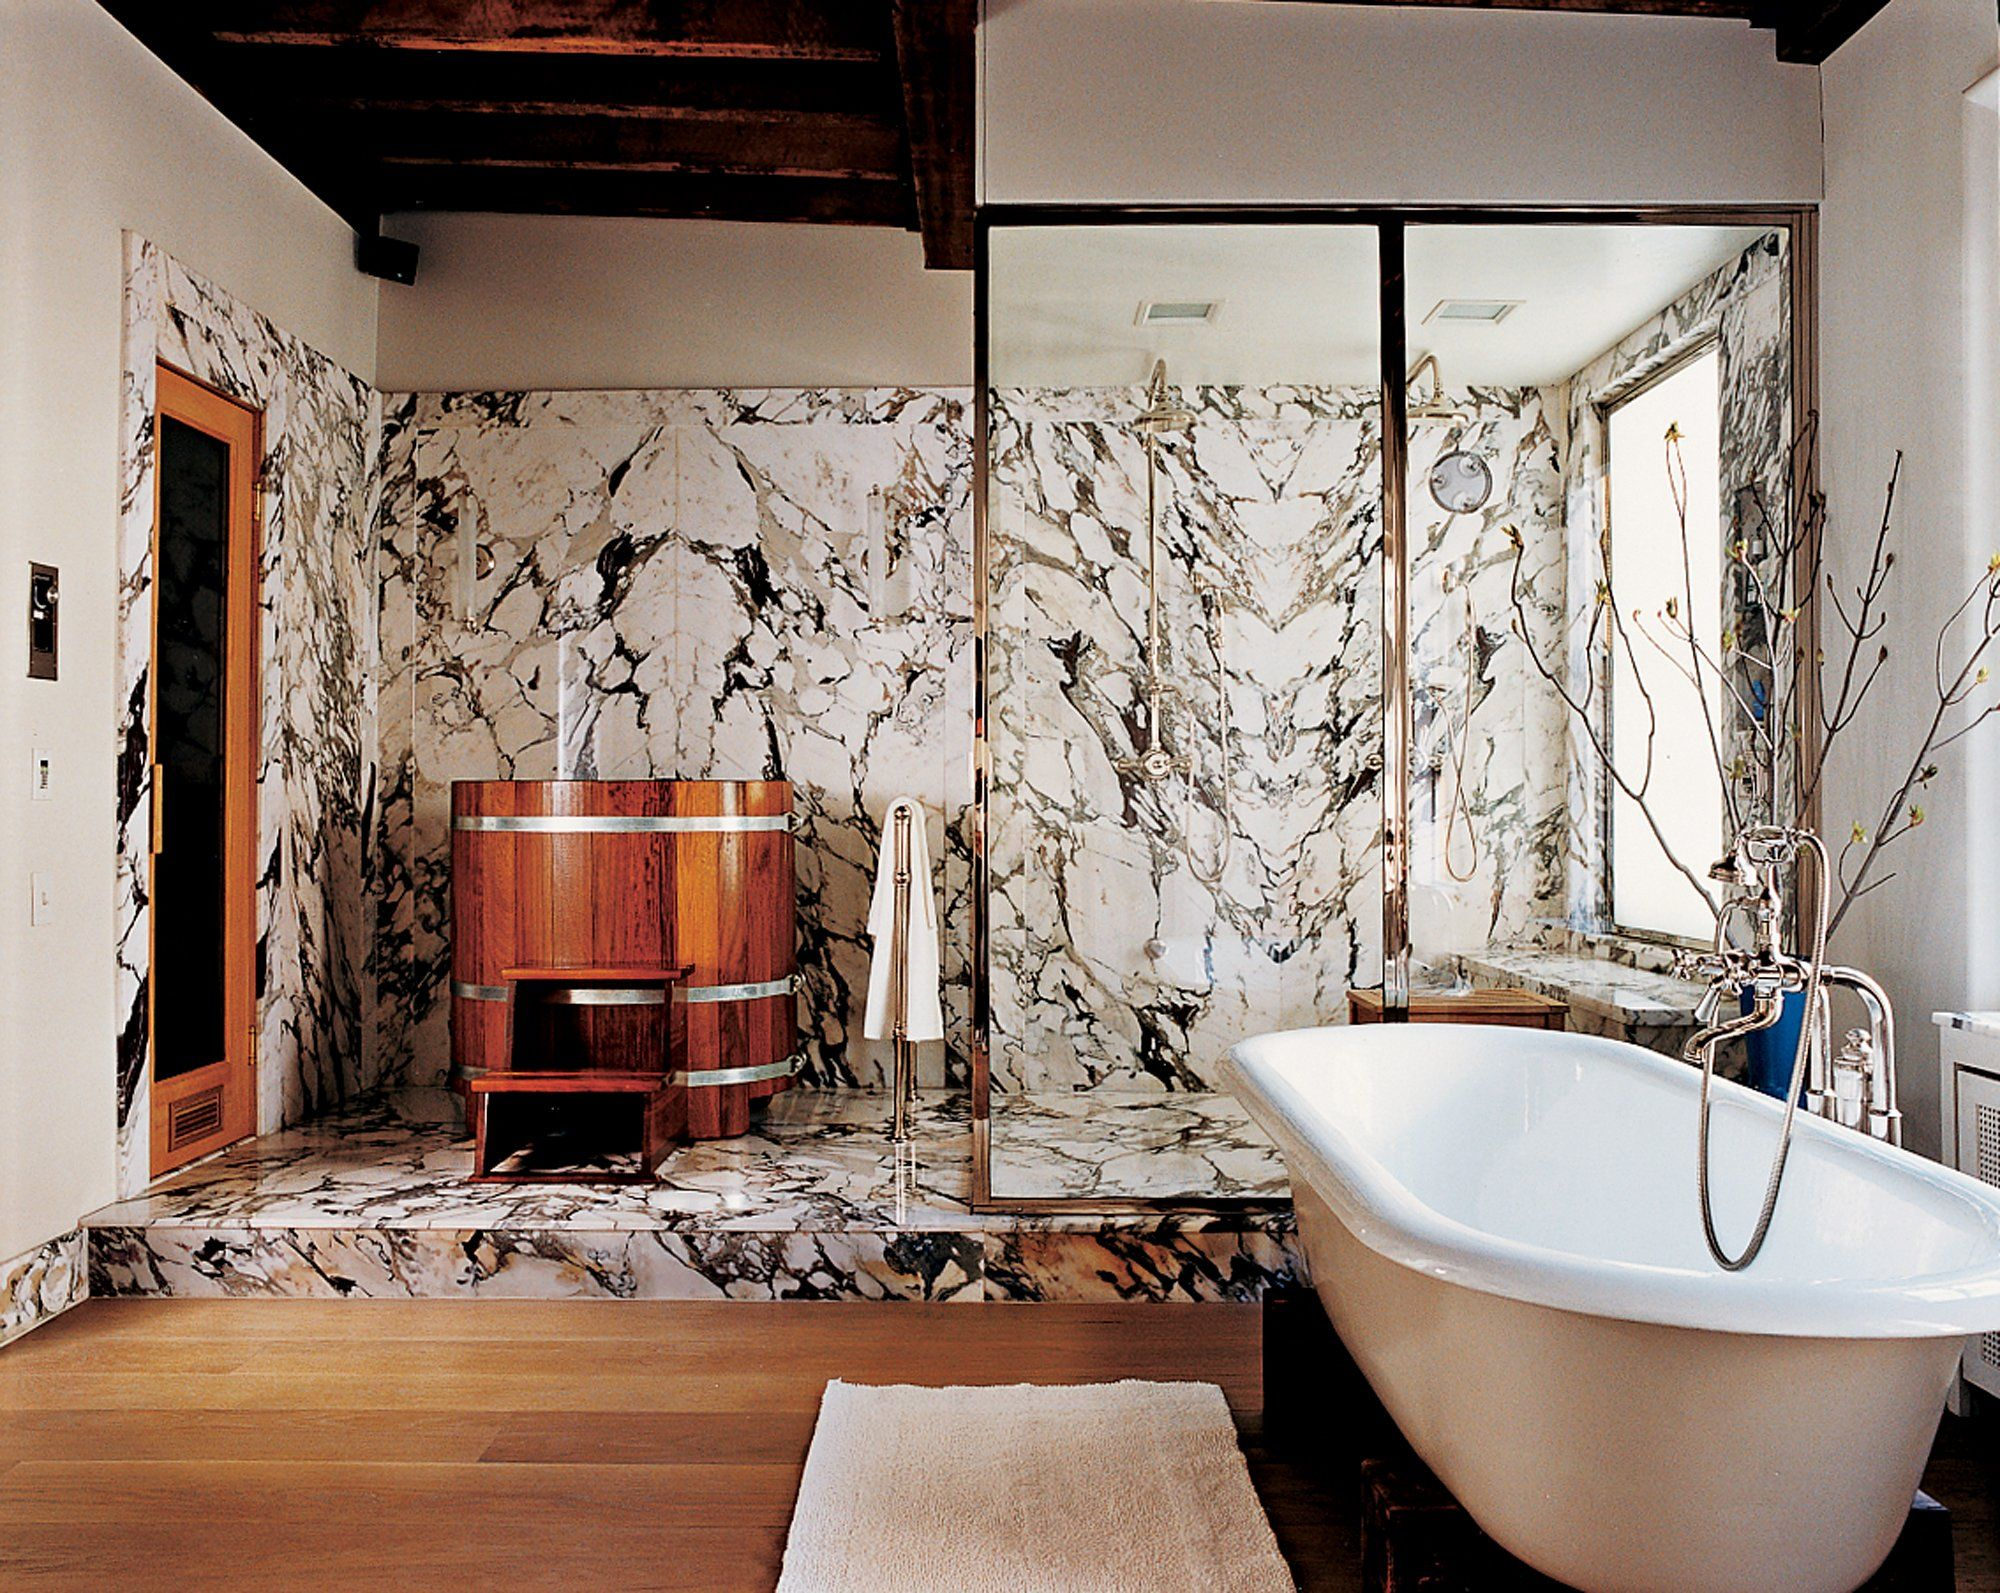 A Wooden Cold Tub And Marble Walls Fill The East